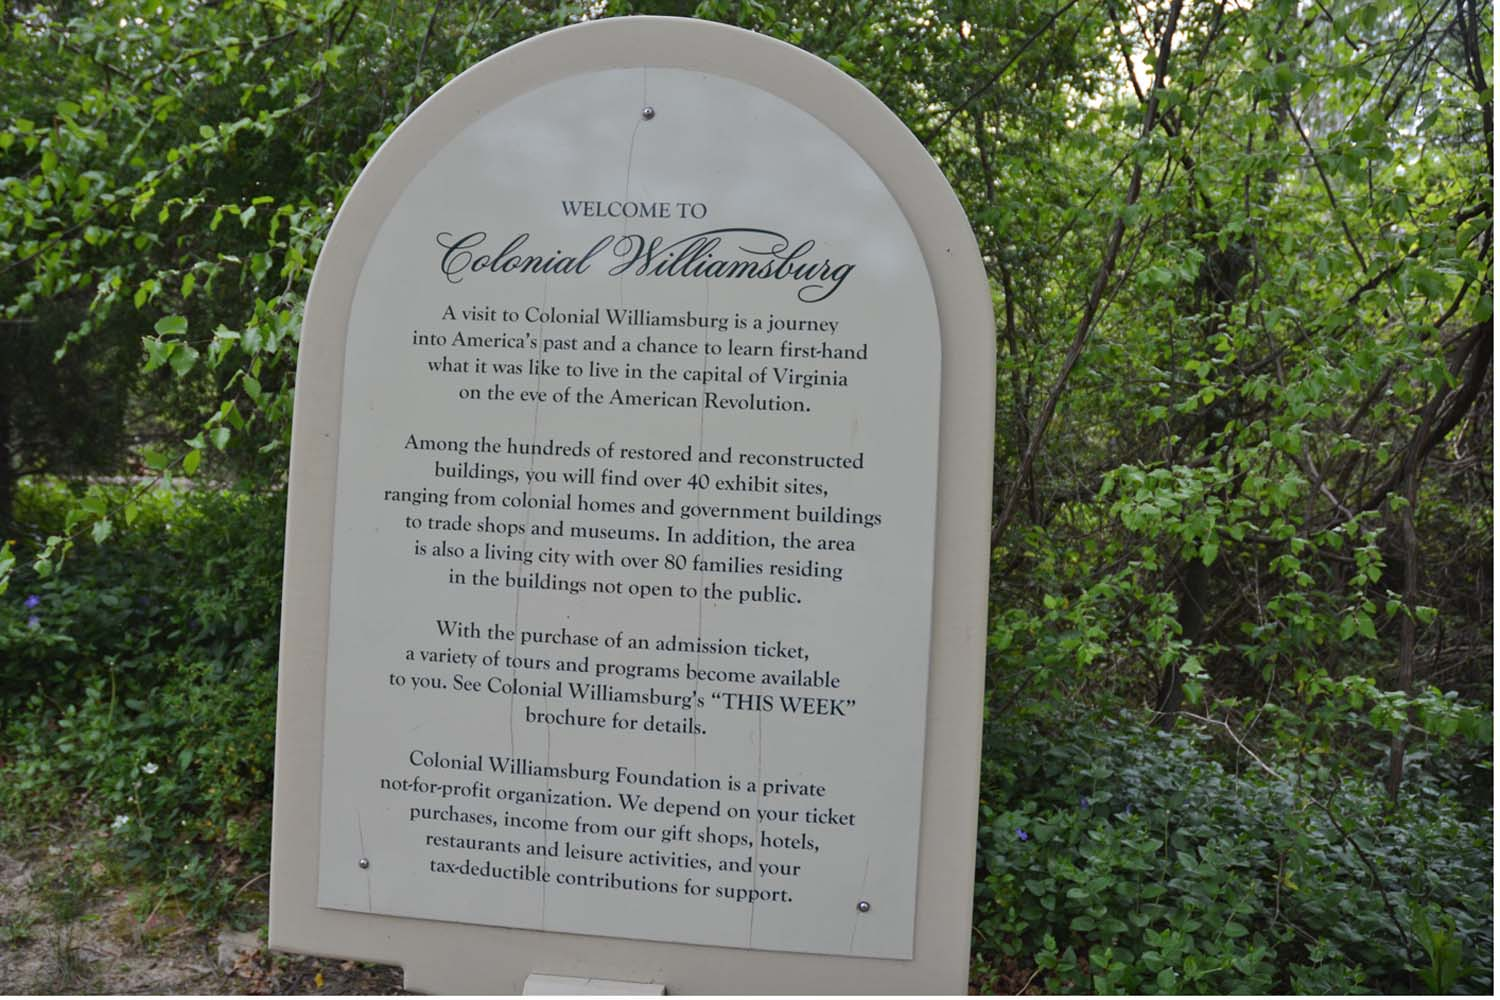 Lots to see at Historic Colonial Williamsburg